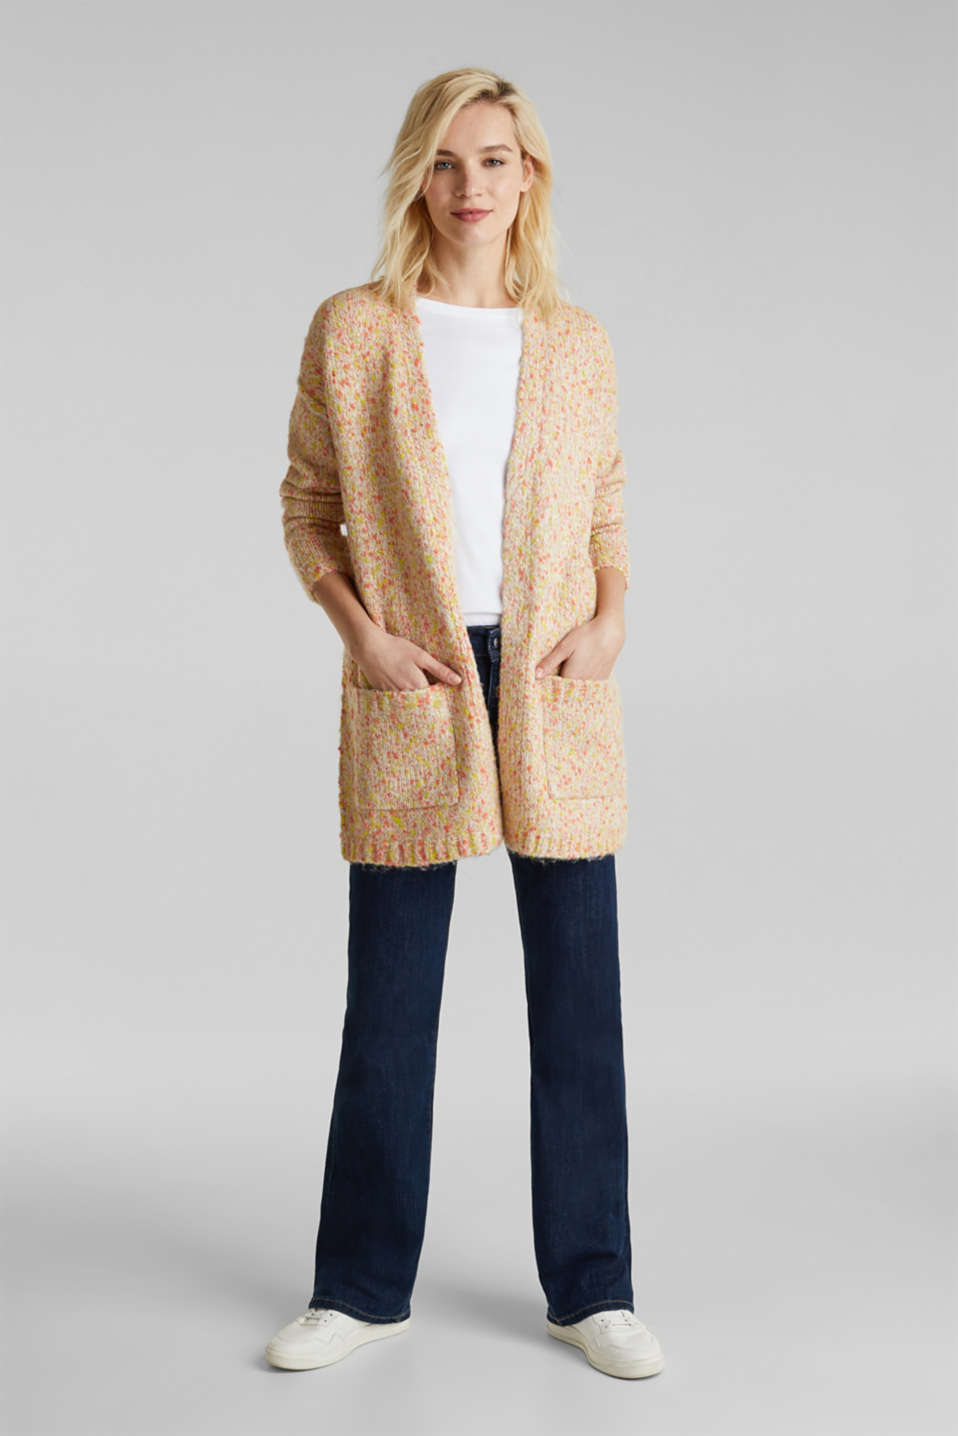 Wool blend: Cardigan with a dimpled texture, BEIGE, detail image number 1